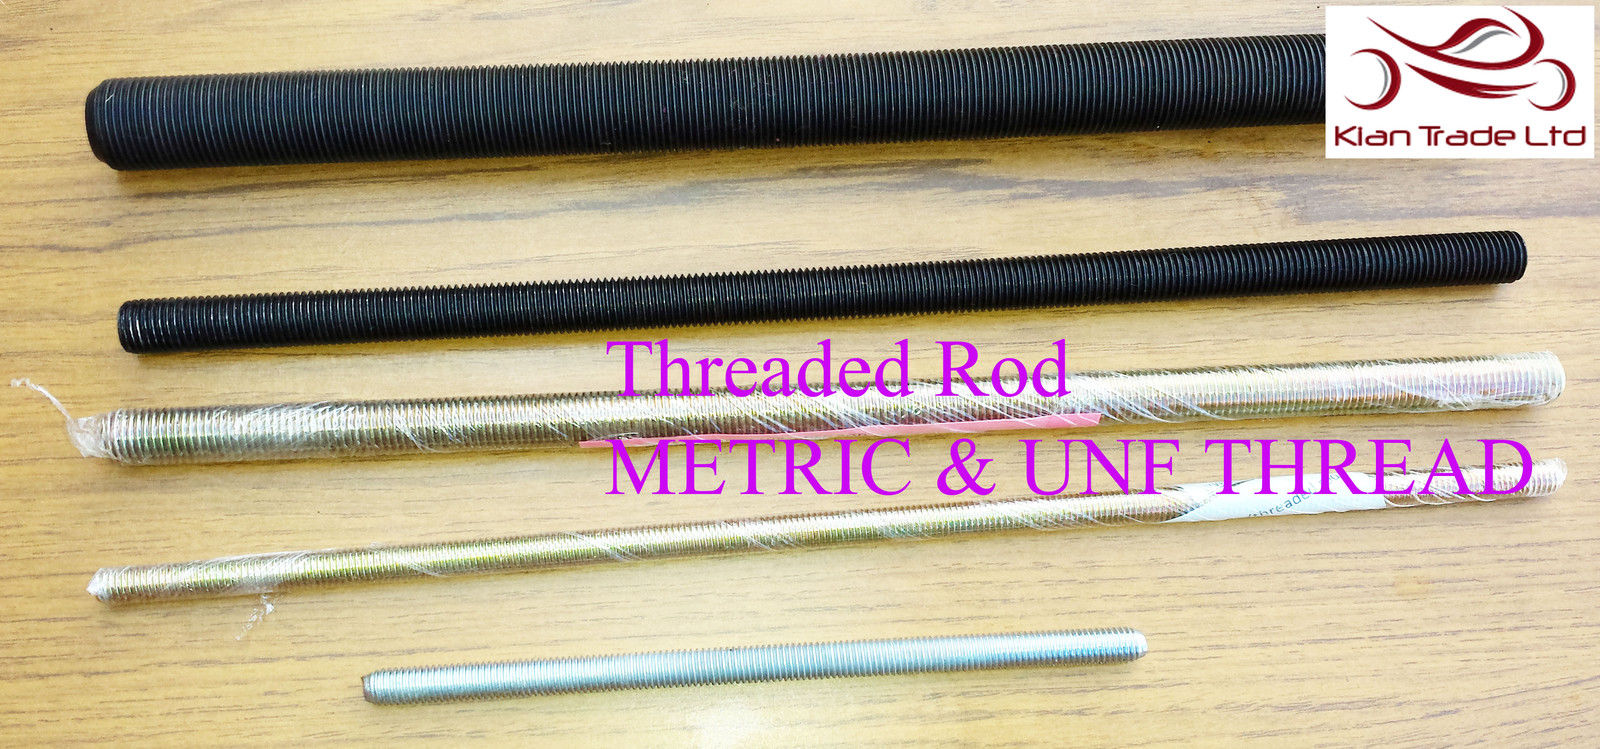 Details about MATRIC THREAD STUD STEEL PLATED FULLY THREADED